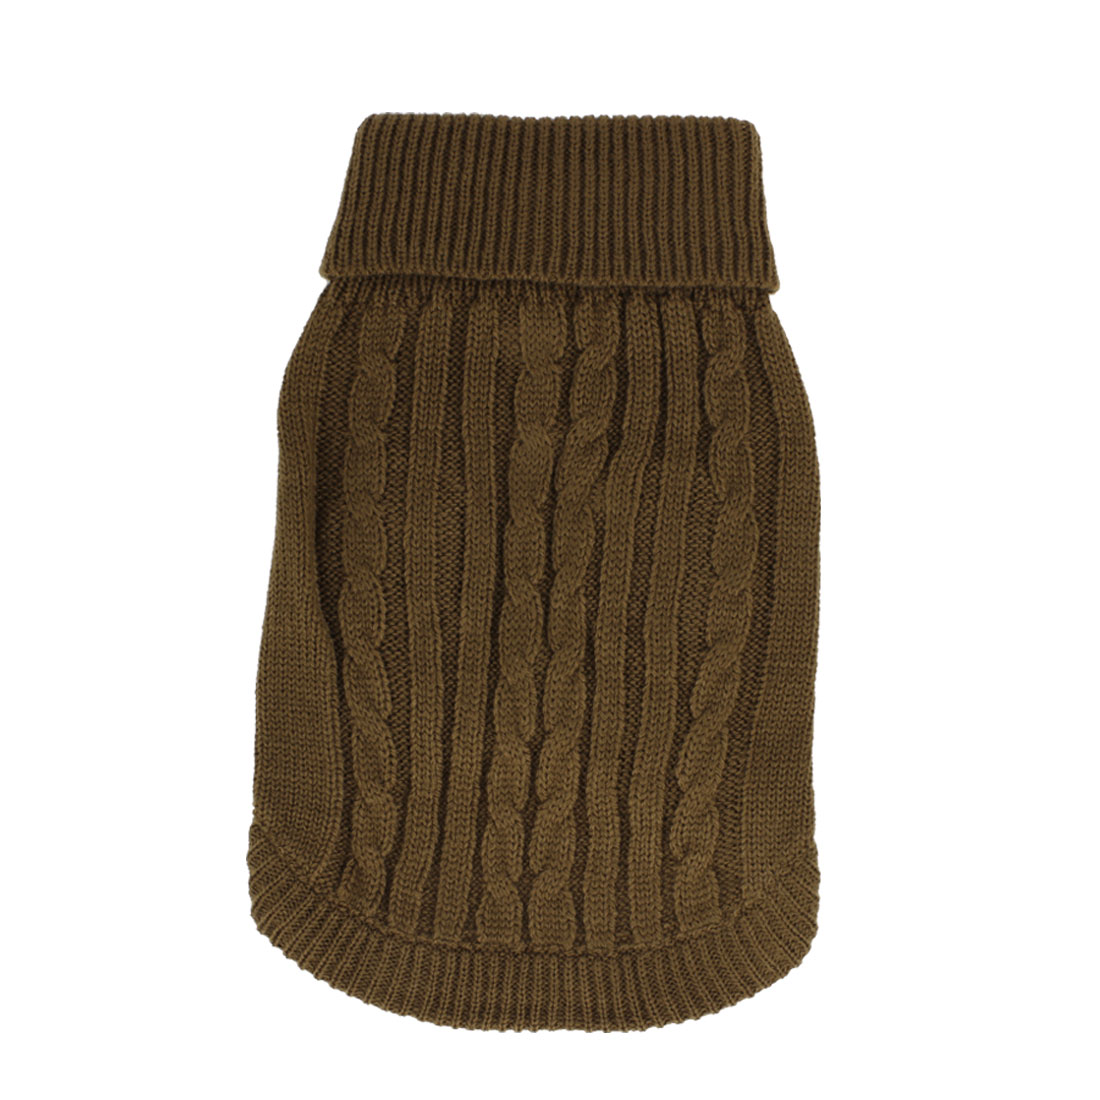 Pet Dog Doggy Ribbed Cuff Twisted Knitwear Turtleneck Apparel Sweater Coffee Color Size S